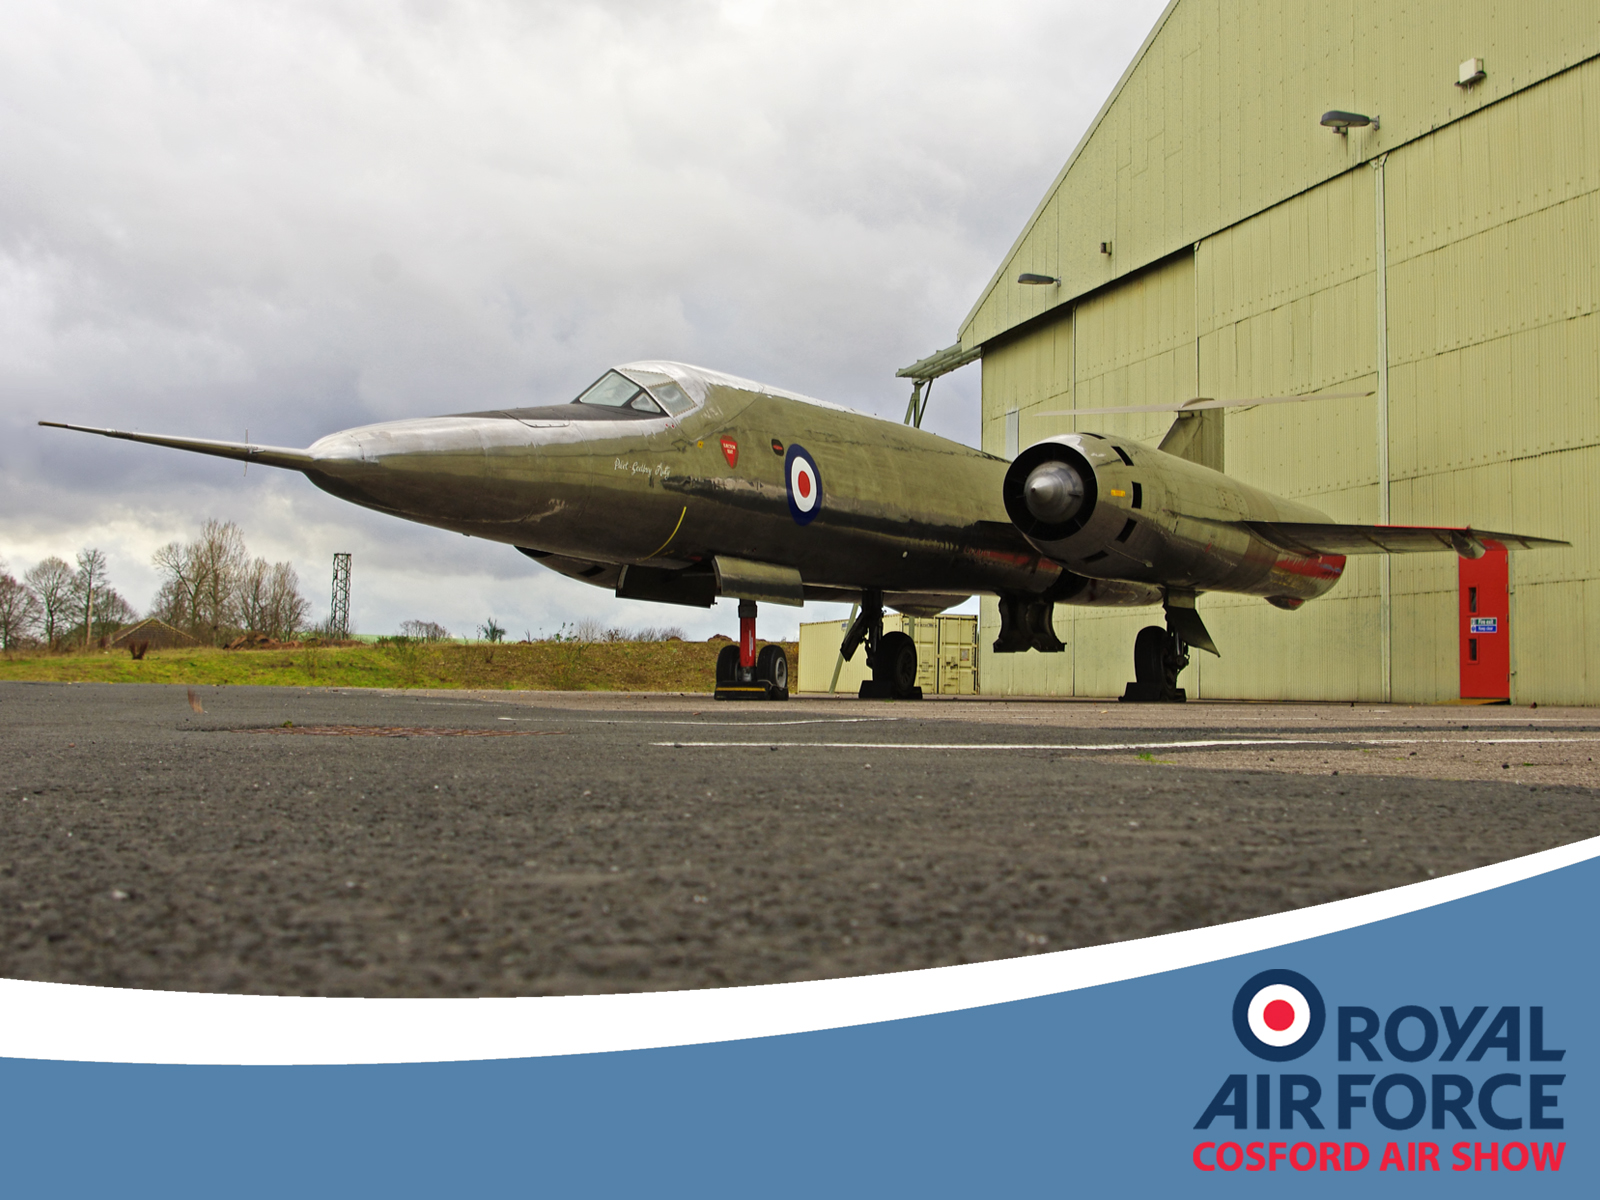 AIRSHOW NEWS: Rare Experimental Aircraft to be showcased at Cosford Air Show